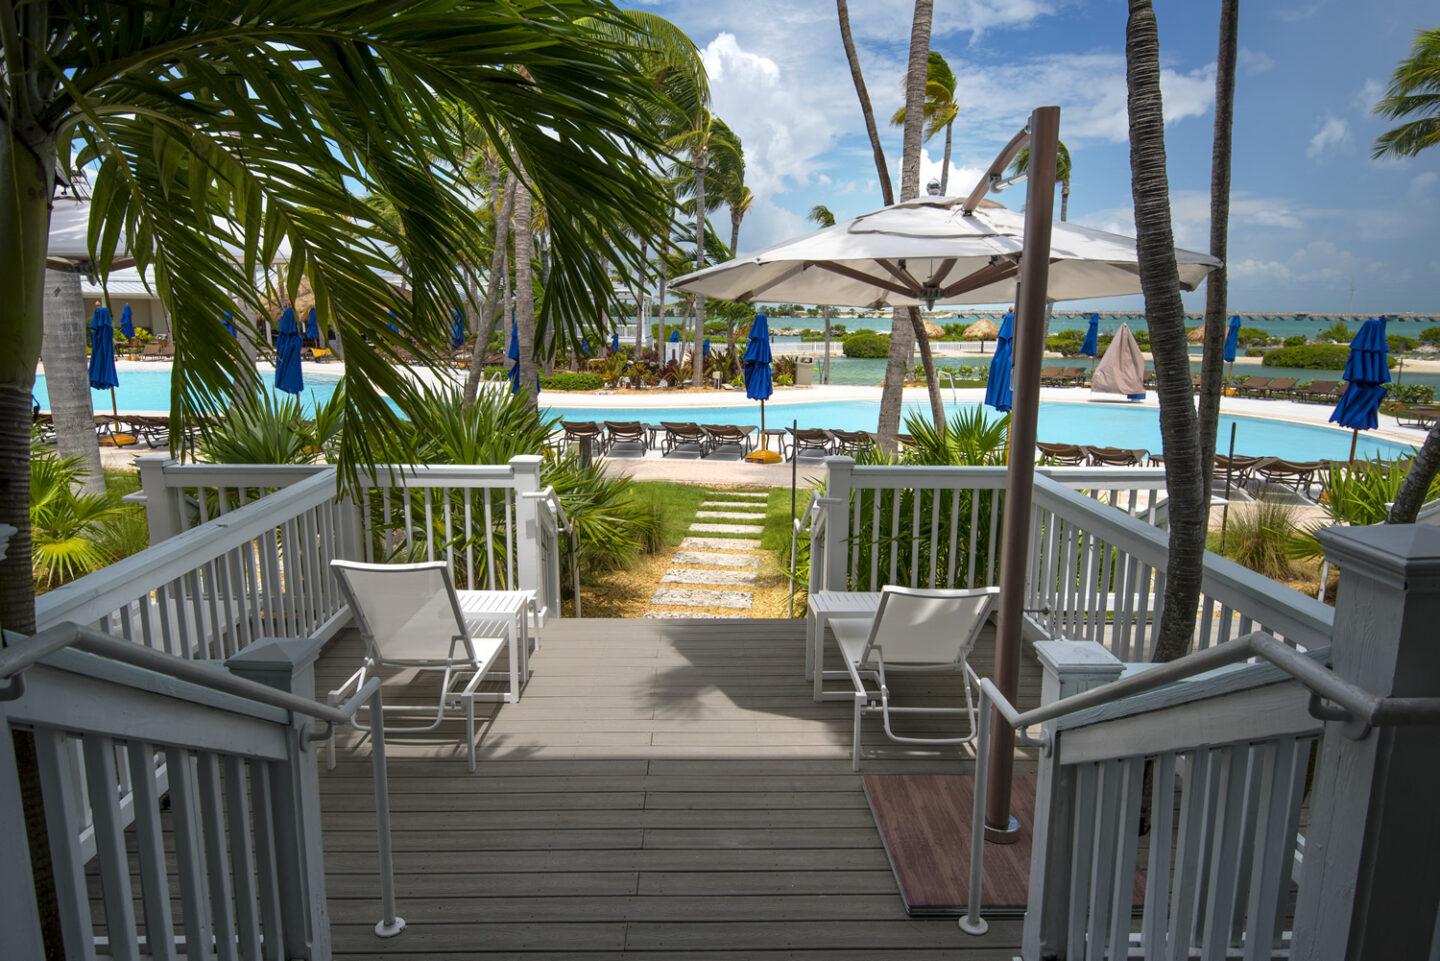 Best rooms for kids at Hawks Cay